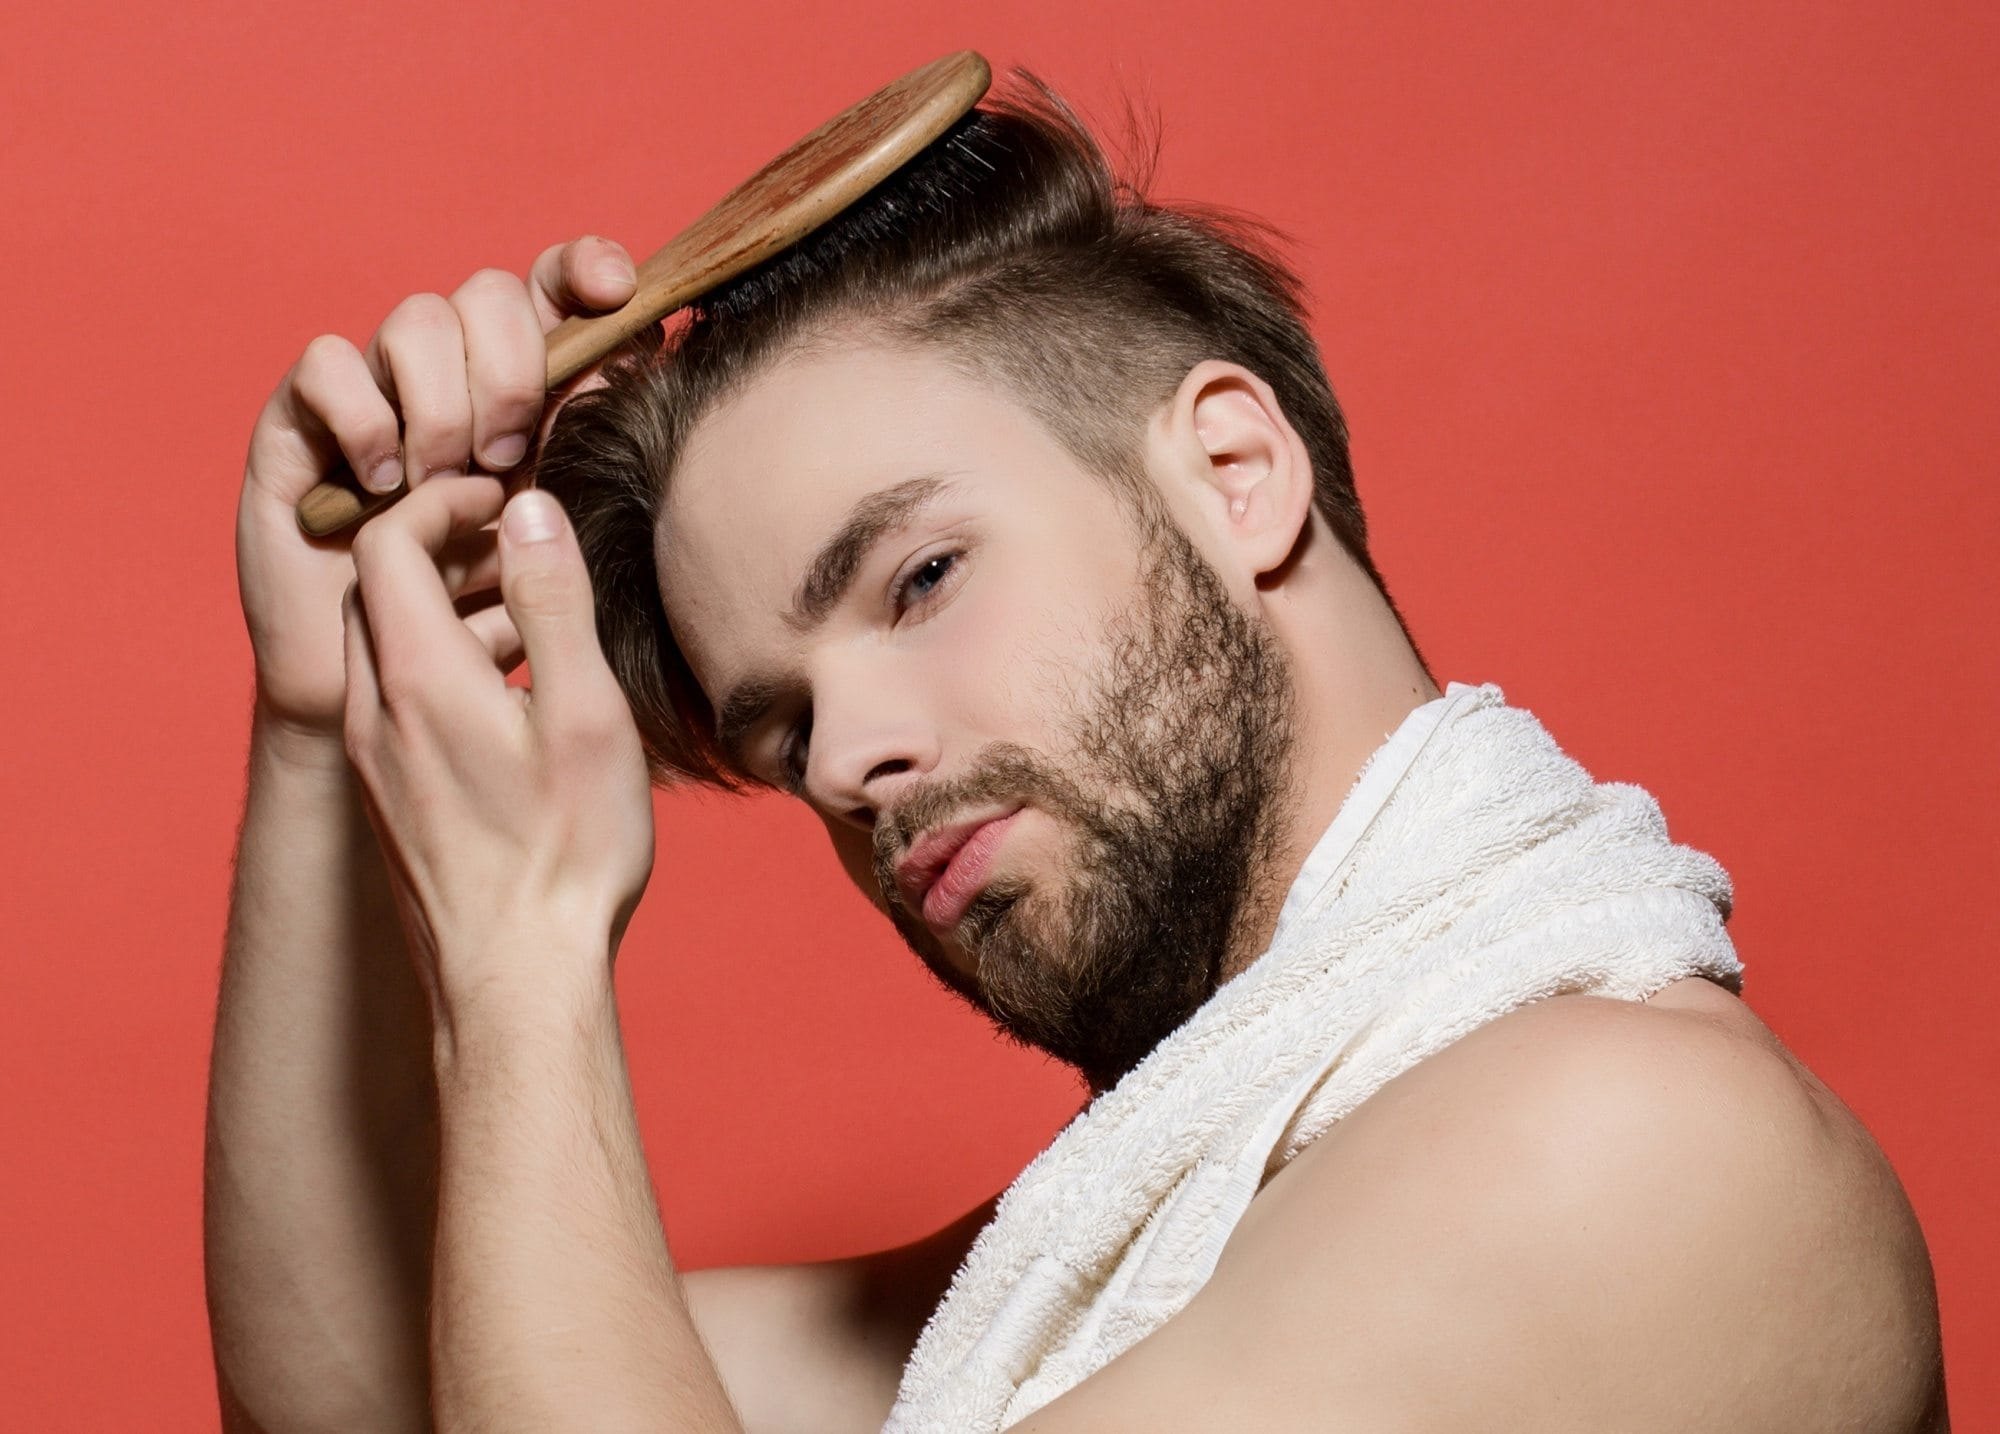 How to deep cleanse your scalp: Closeup shot of a man brushing his short hair against a red orange background